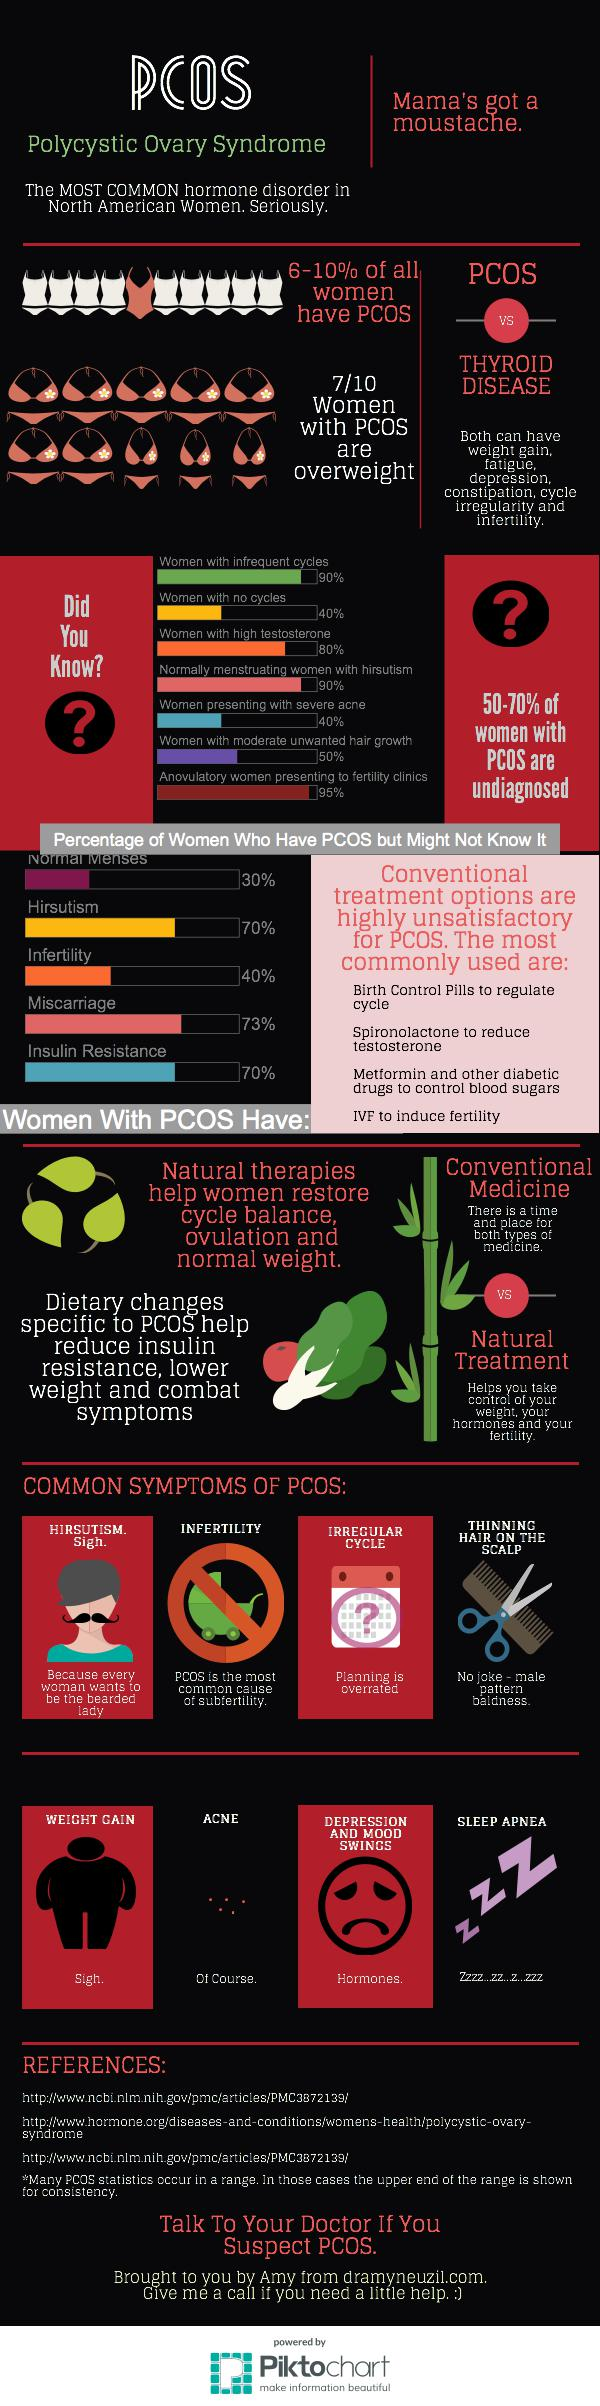 PCOS infographic from dramyneuzil.com